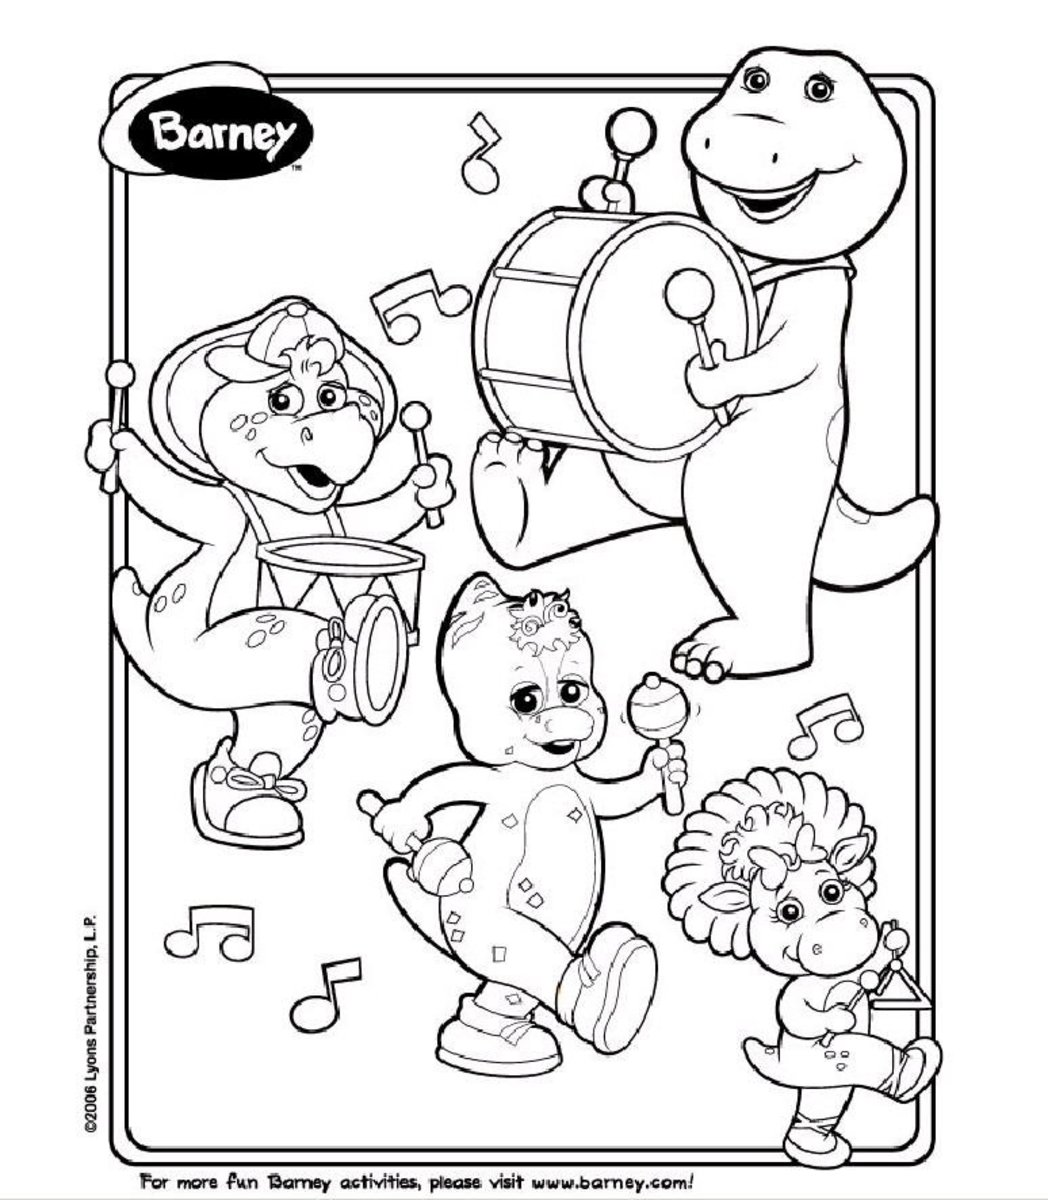 free printable barney coloring pages hubpages - Barney Coloring Book